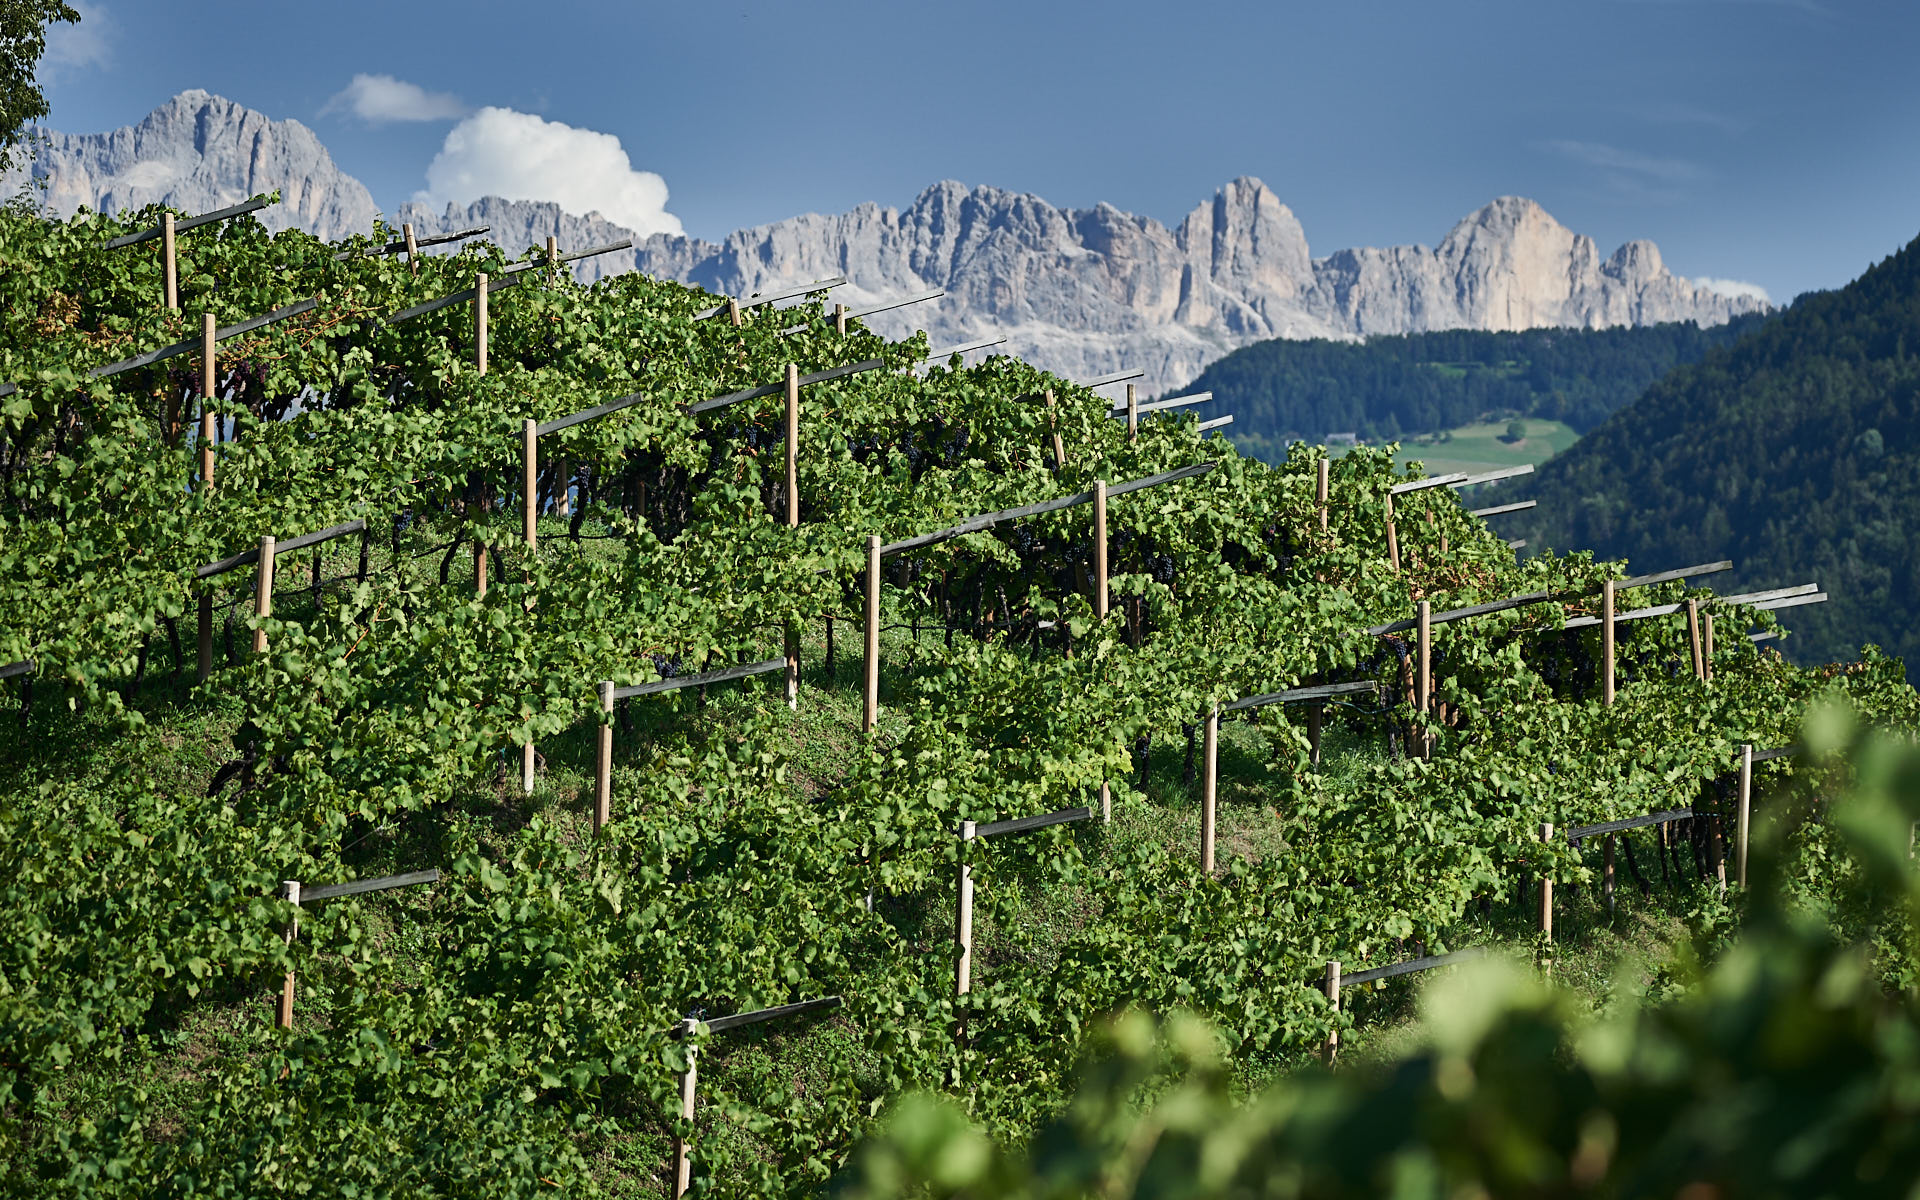 Vineyard in the Dolomites